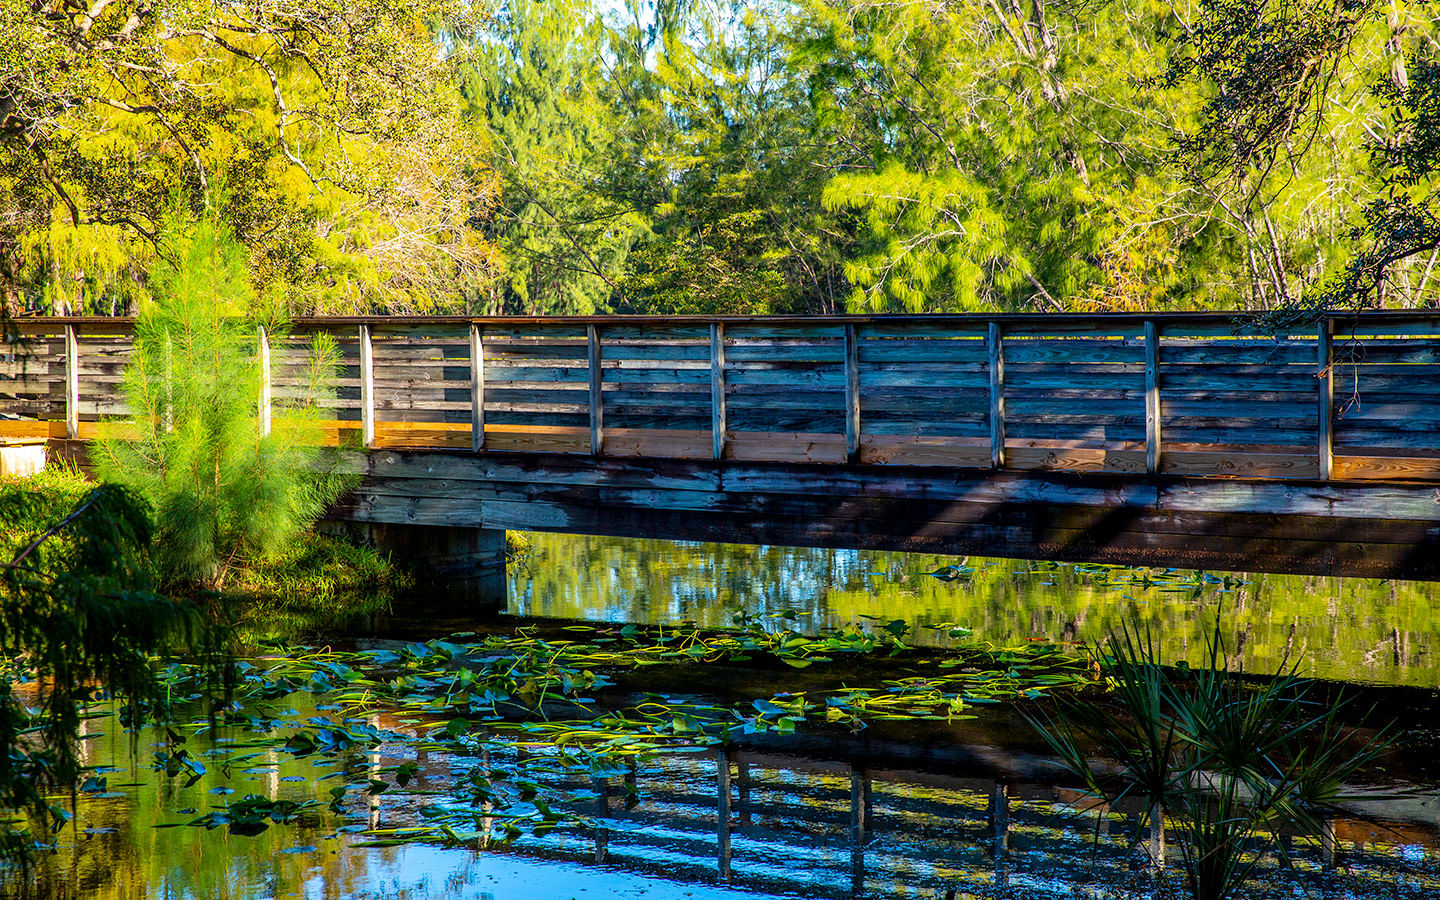 A bridge in Amelia Earhart Park